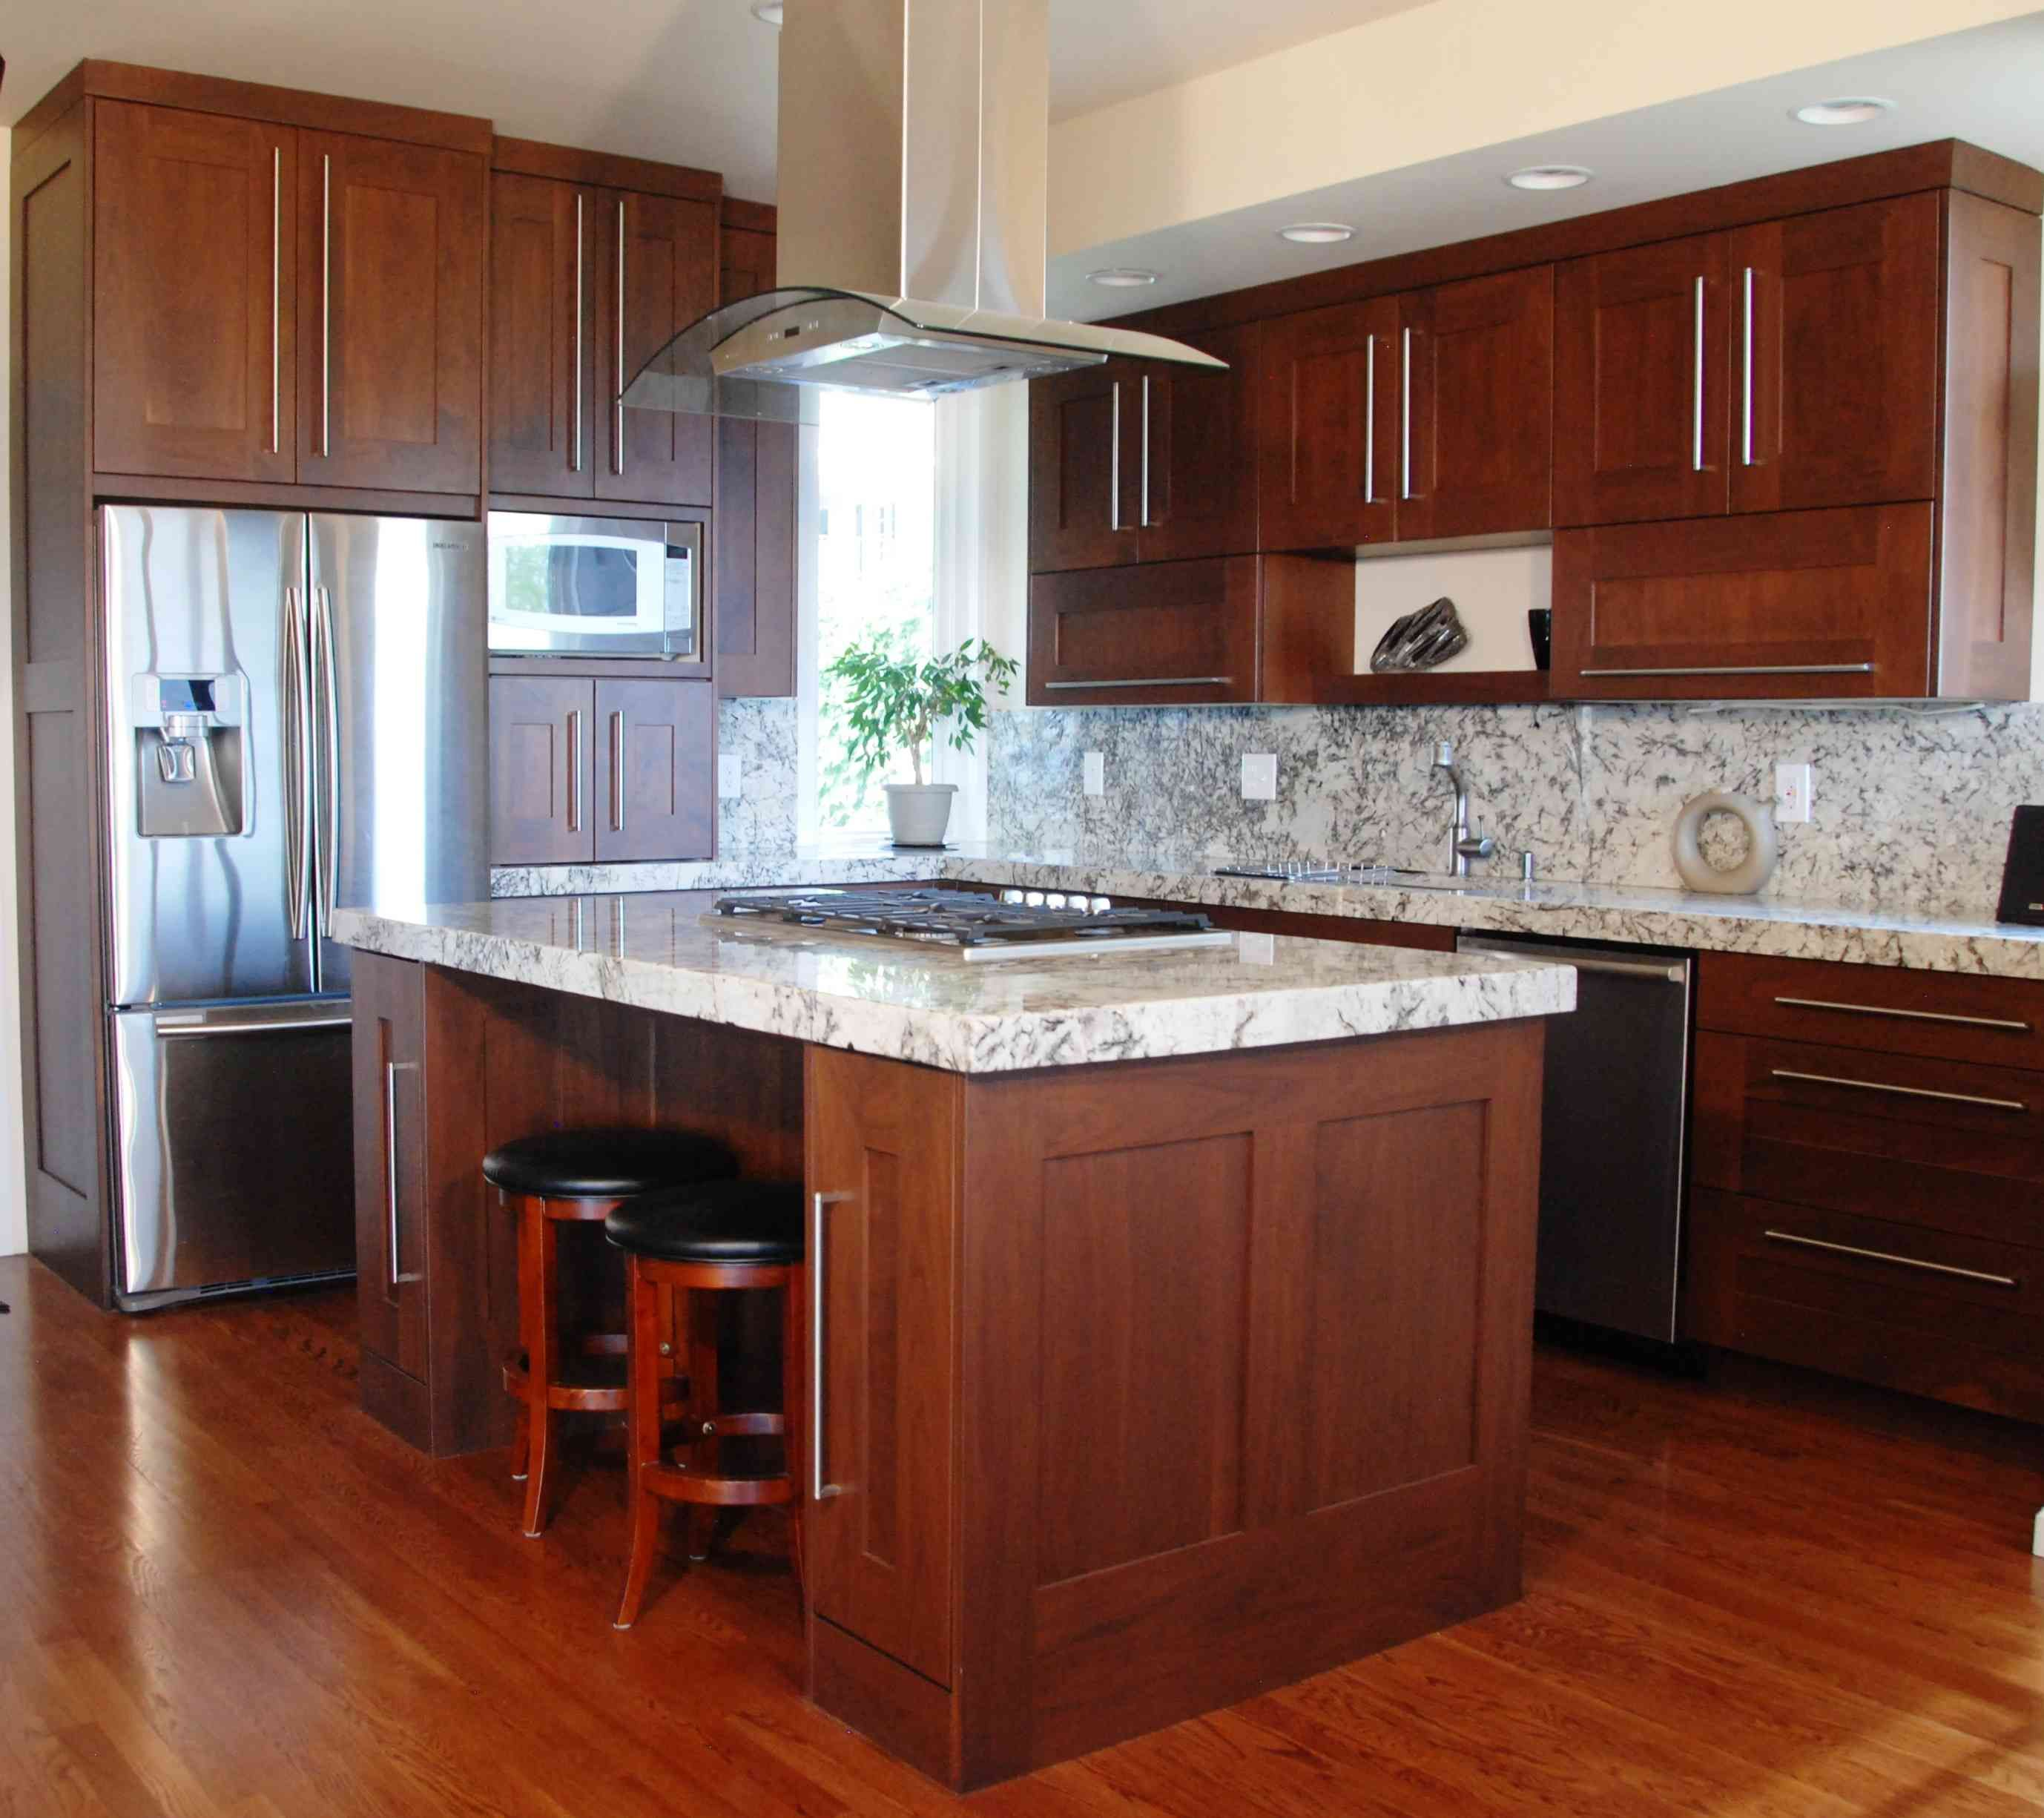 Top Kitchen Cabinet Designs Small Endearing Decorations Kitchen Brown Solid  Painted Wooden Kitchens Cabinet With Enganging White Marble Tops Kitchen  Island